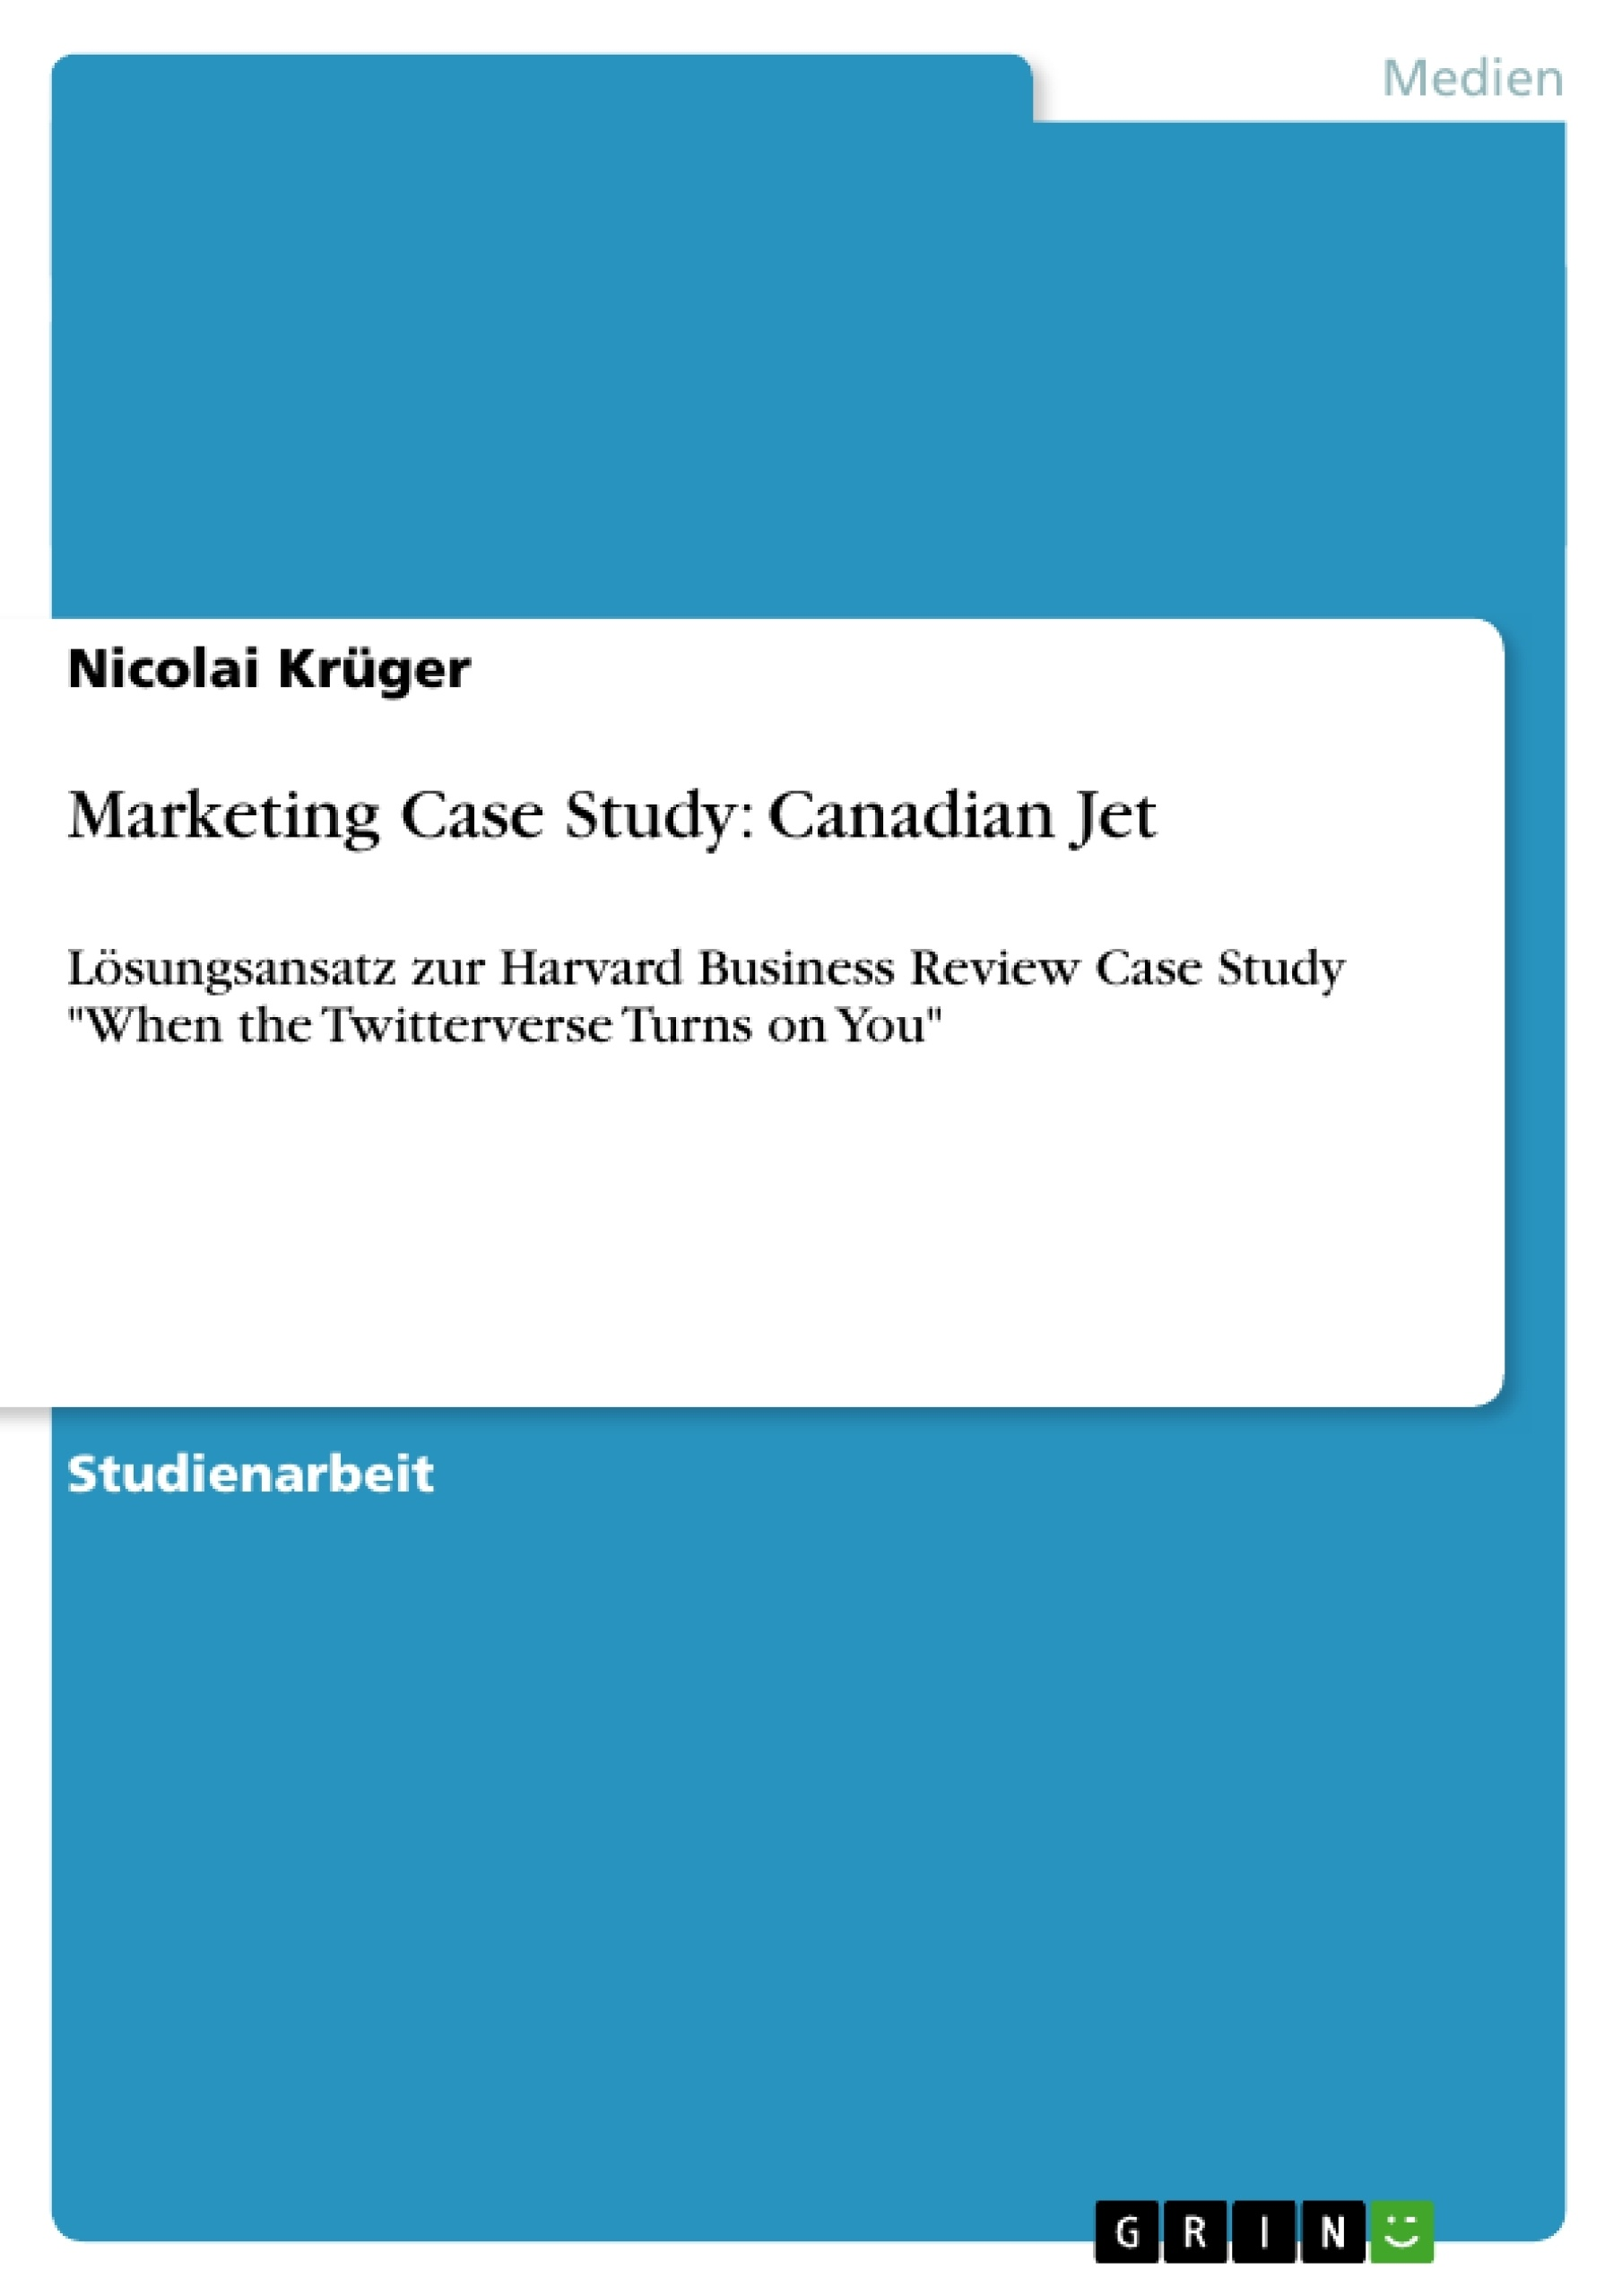 Titel: Marketing Case Study: Canadian Jet